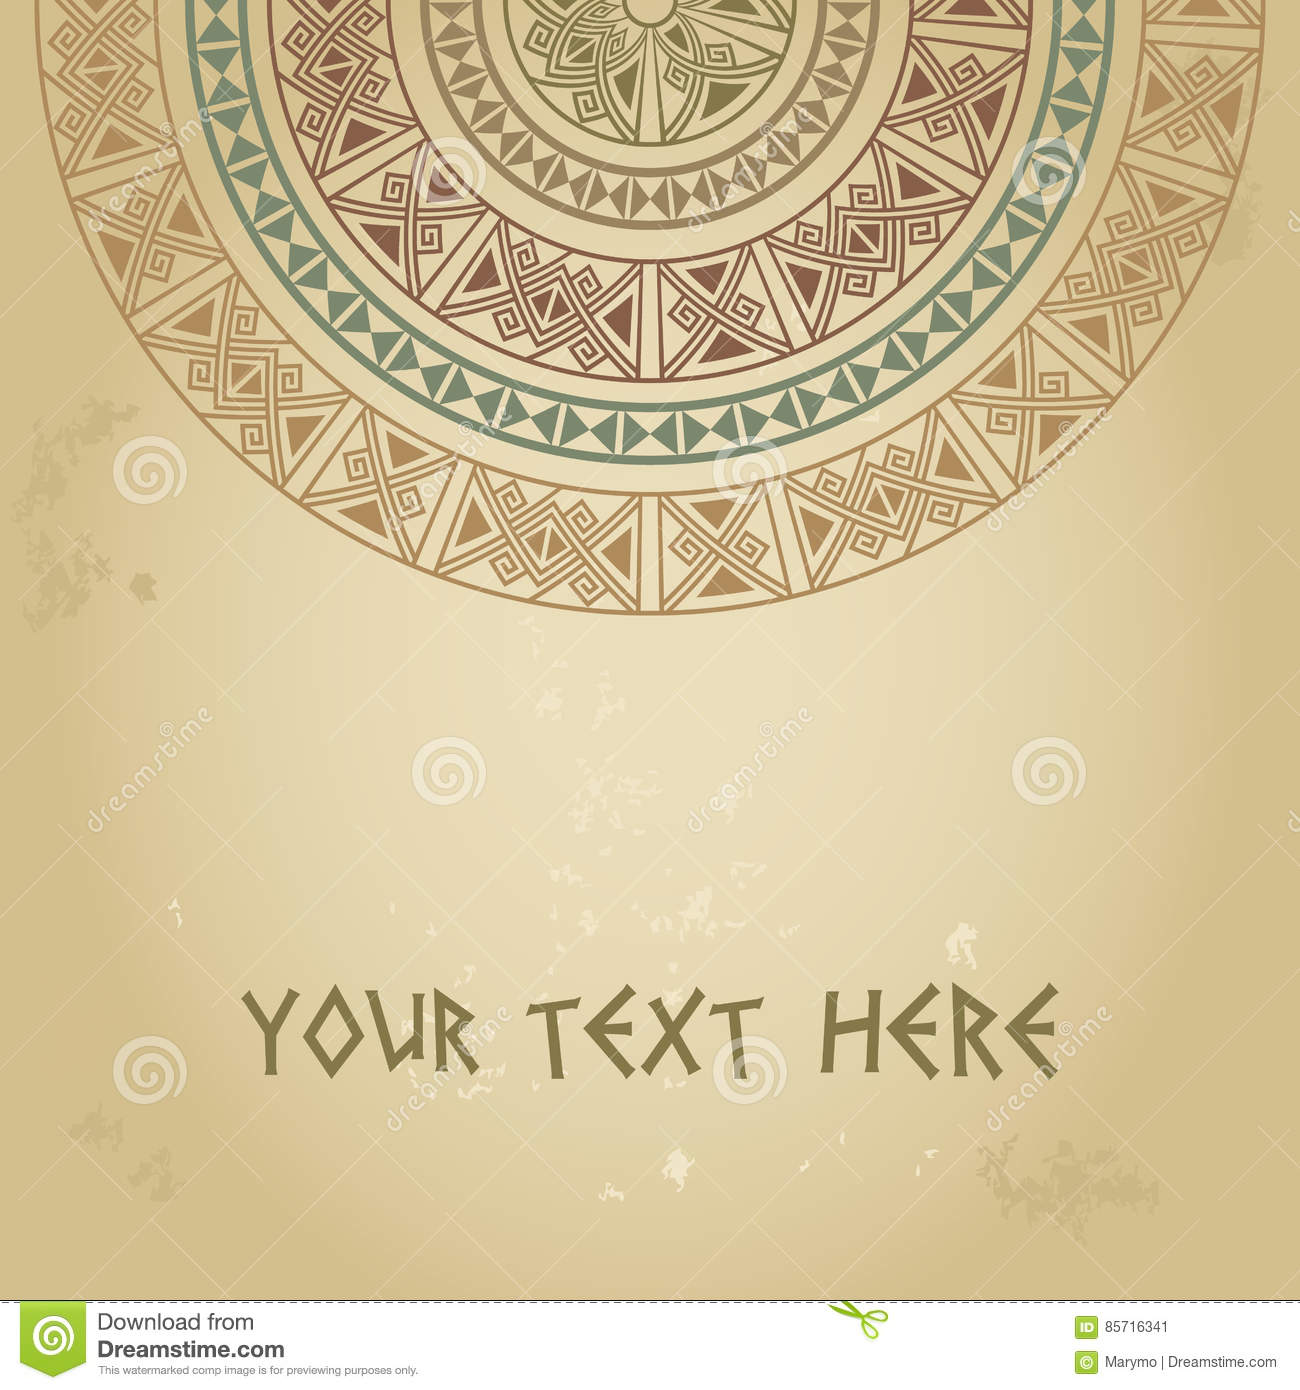 Template For Cards Invitations Banners With Ethnic